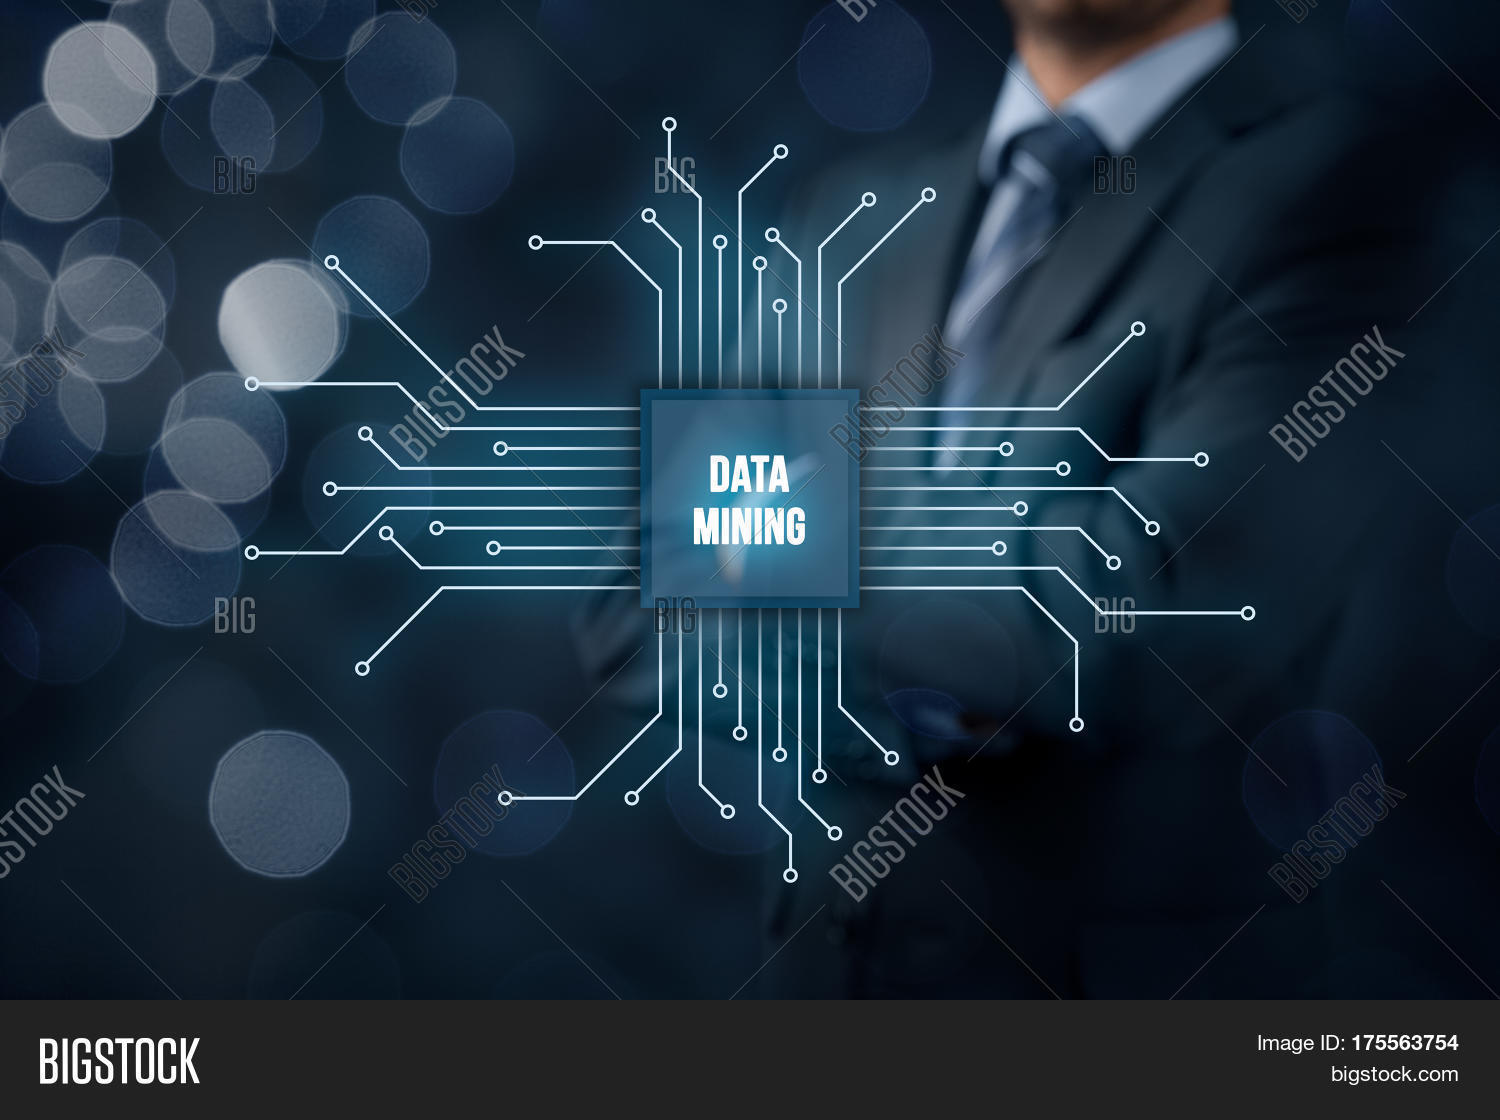 Intelligent agents for data mining and information retrieval pdf